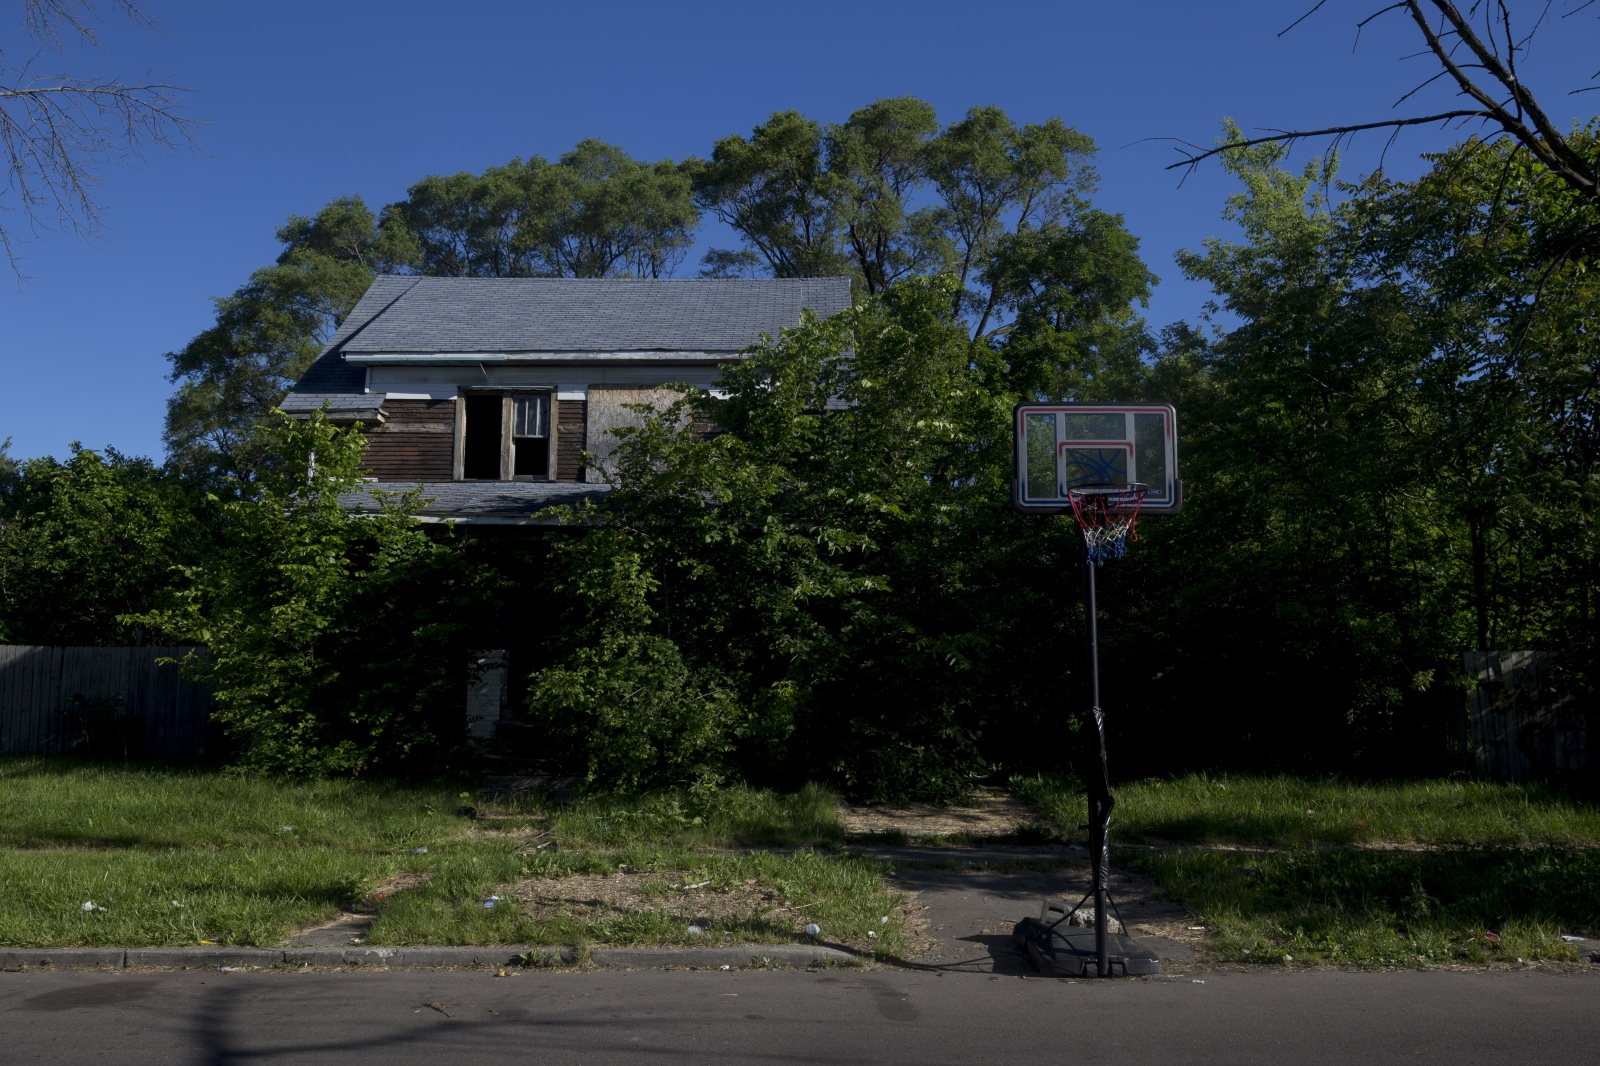 The morning of Michael Green's high school graduation. Five years after being shot, the same basketball hoop stands down the street from Michael's home. Michael will attend Miles College in Alabama on a basketball scholarship.